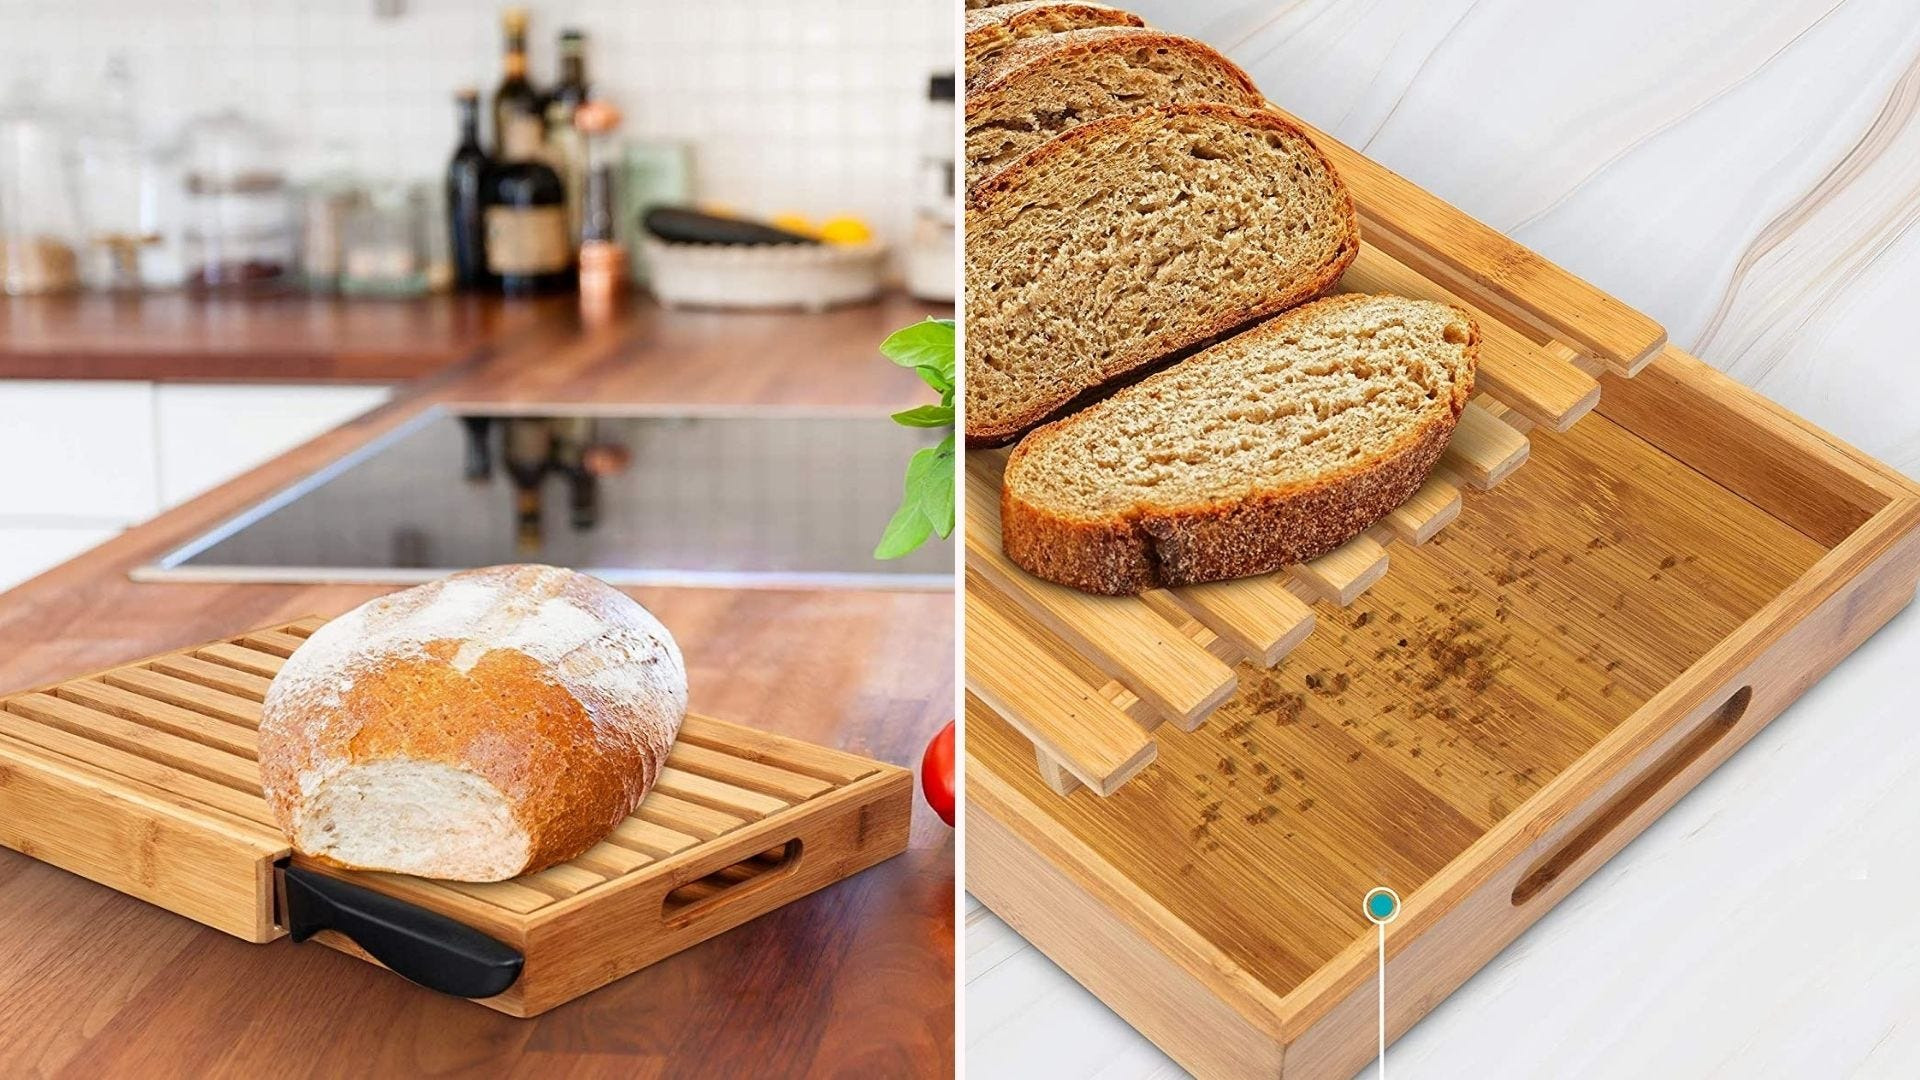 A loaf of bread on a cutting board; a sliced loaf of bread with a crumb tray beneath it